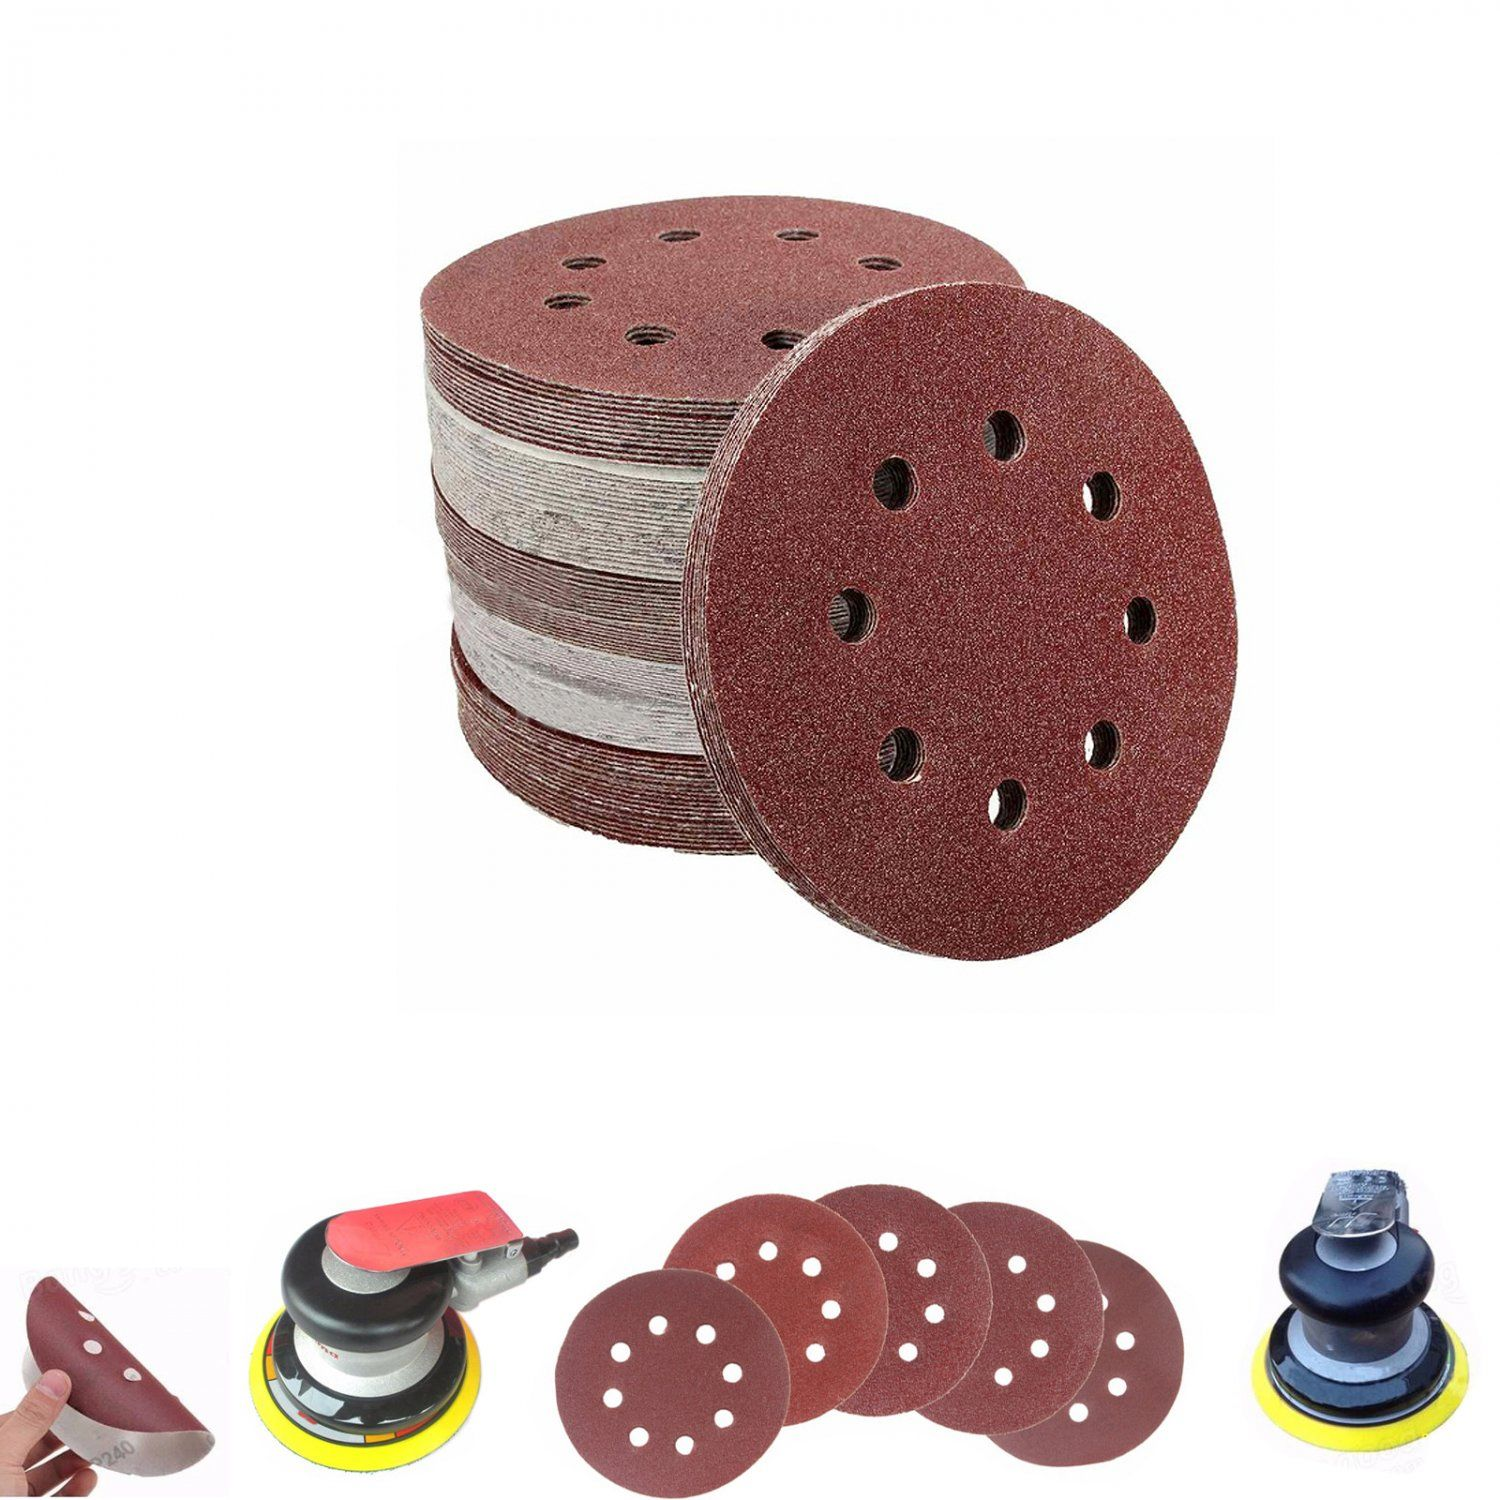 Sanding Discs Abrasive Sand Paper Pads 50 Pack 8 Hole 125mm Dia Assorted Grit Paper Pads Sandpaper Sanding